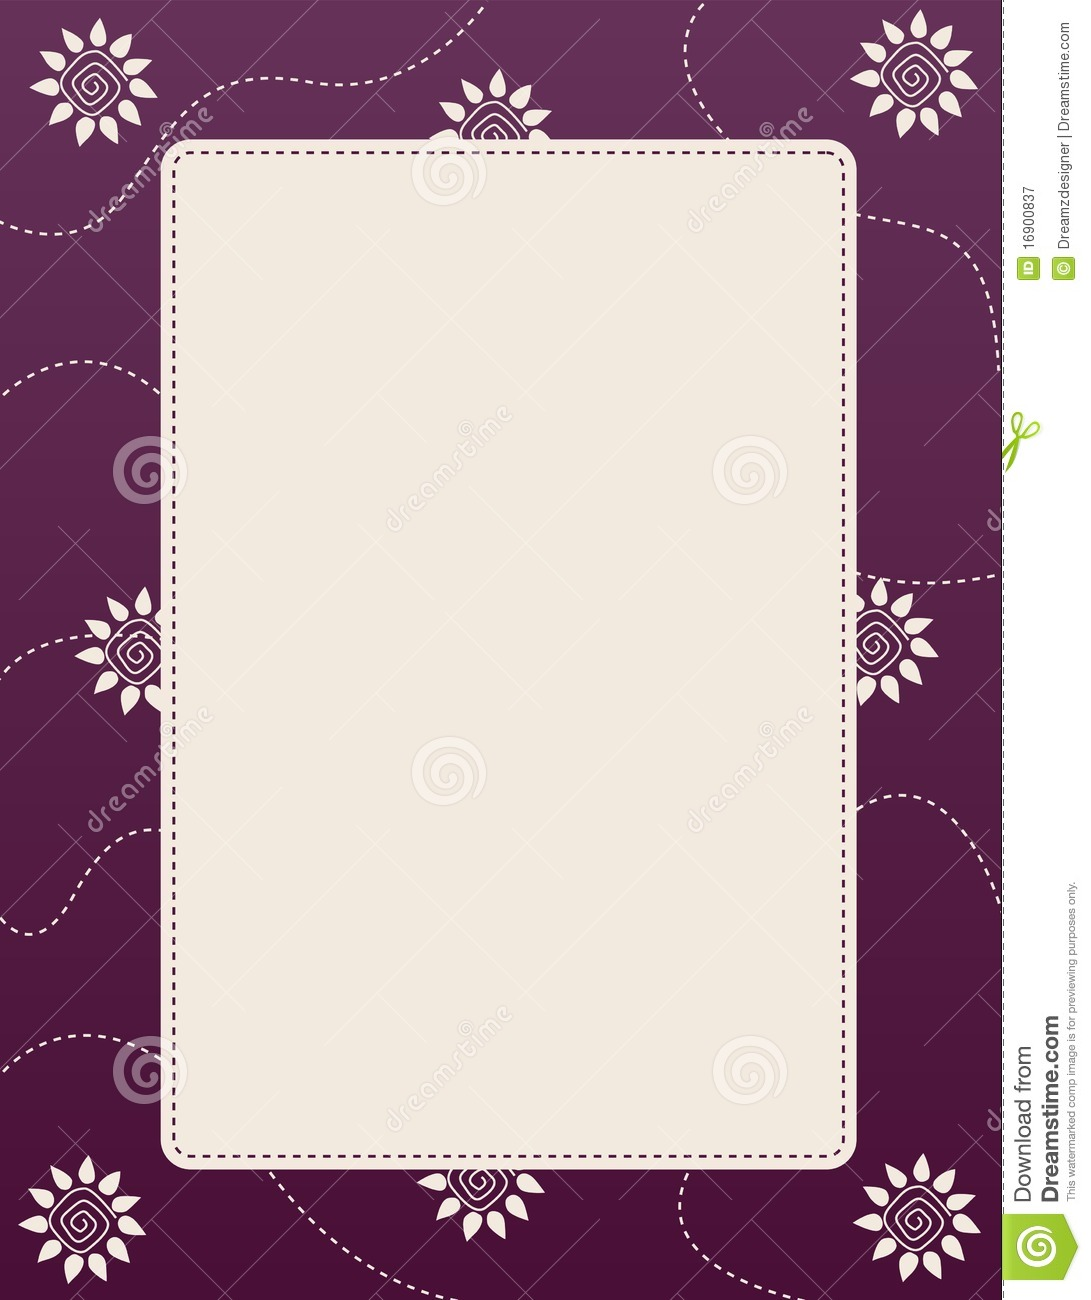 Wedding invitation background stock vector illustration of dotted wedding invitation background stopboris Gallery